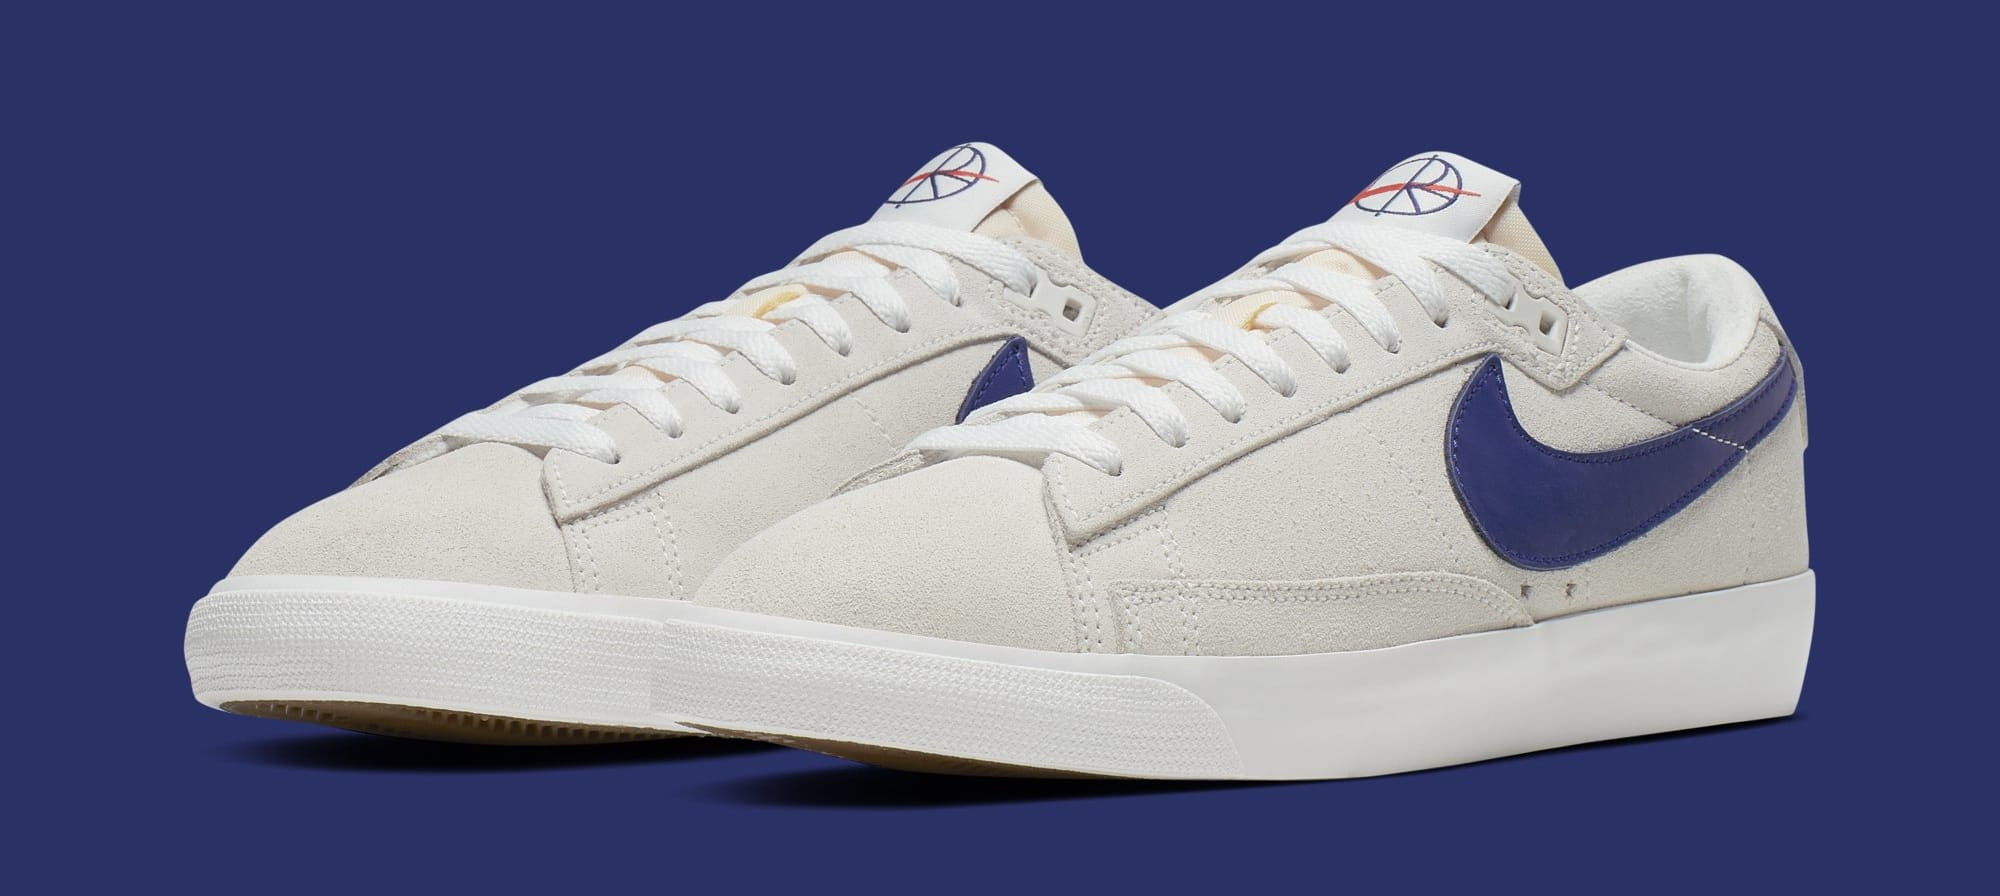 Polar Skate Co. x Nike SB Blazer Low AV3028-100 (Pair)